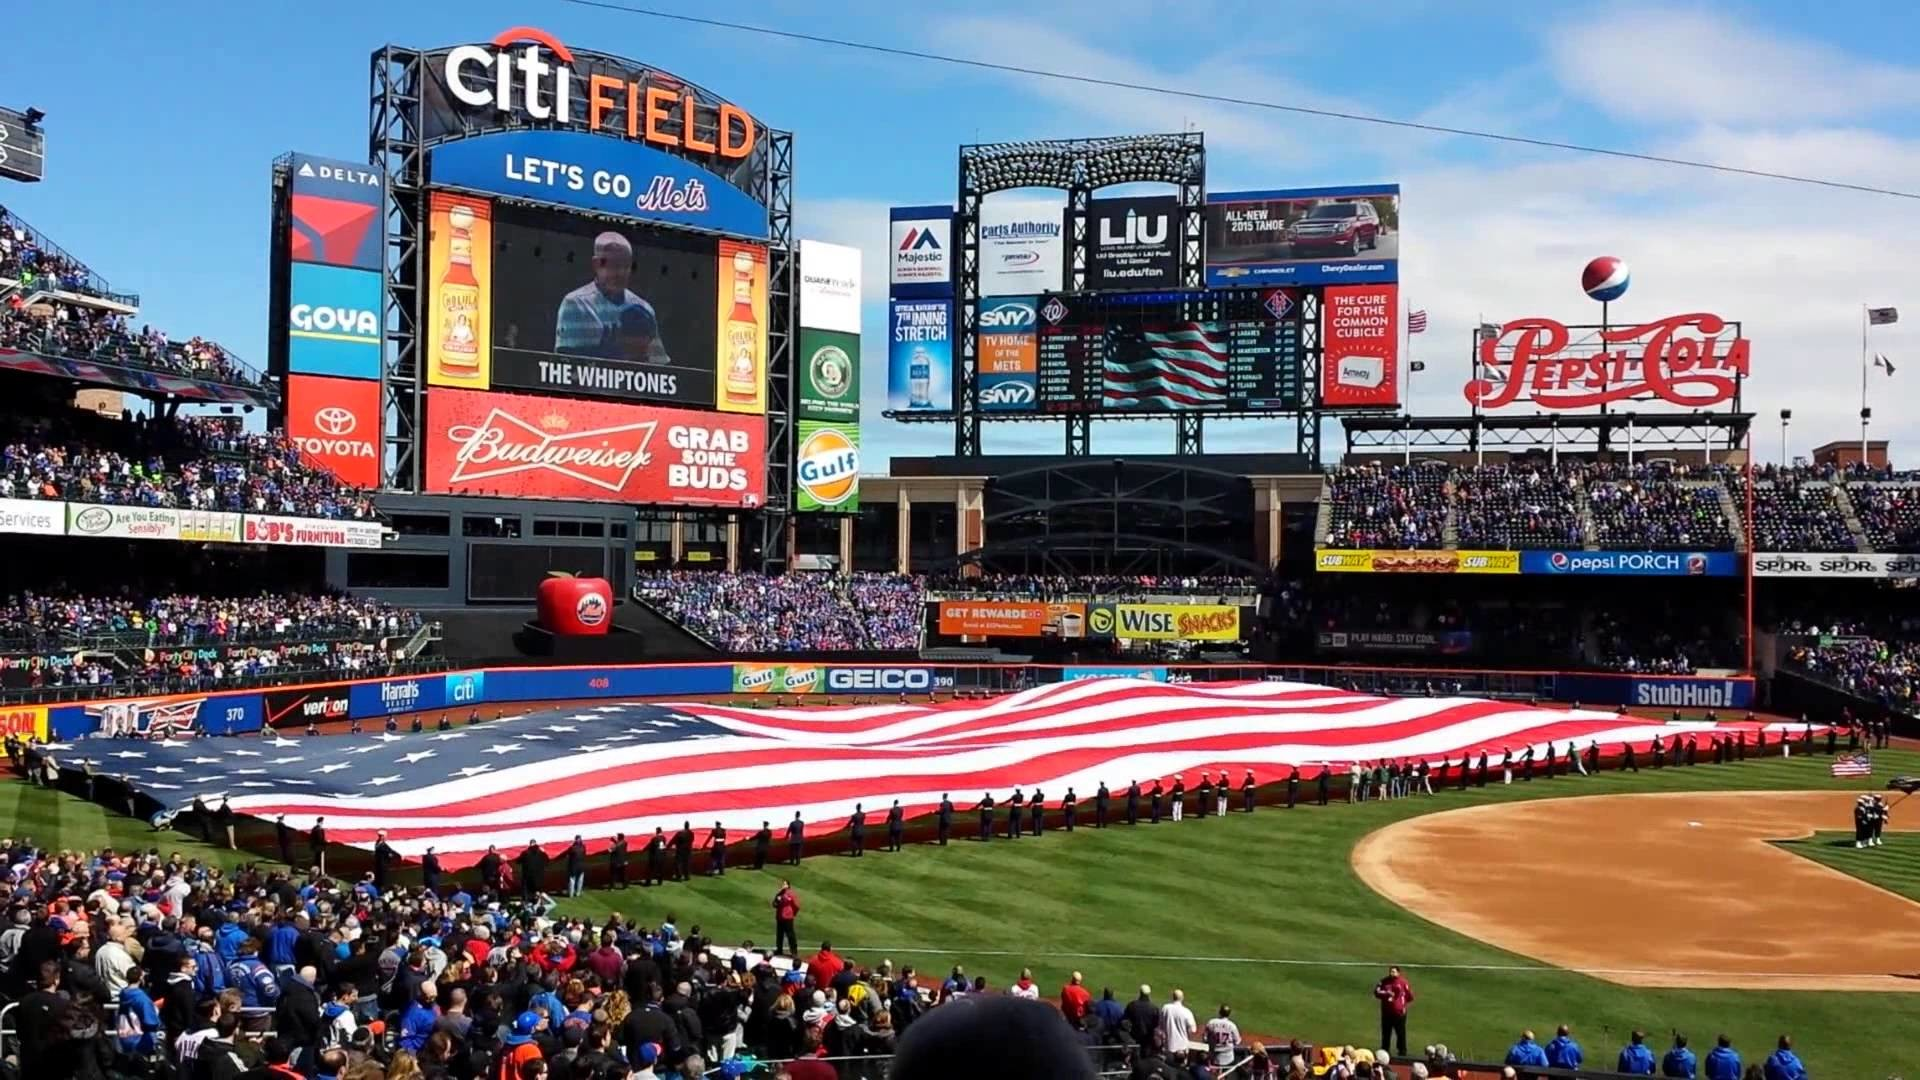 2014 Opening day @ Citi field for the Mets vs Nats